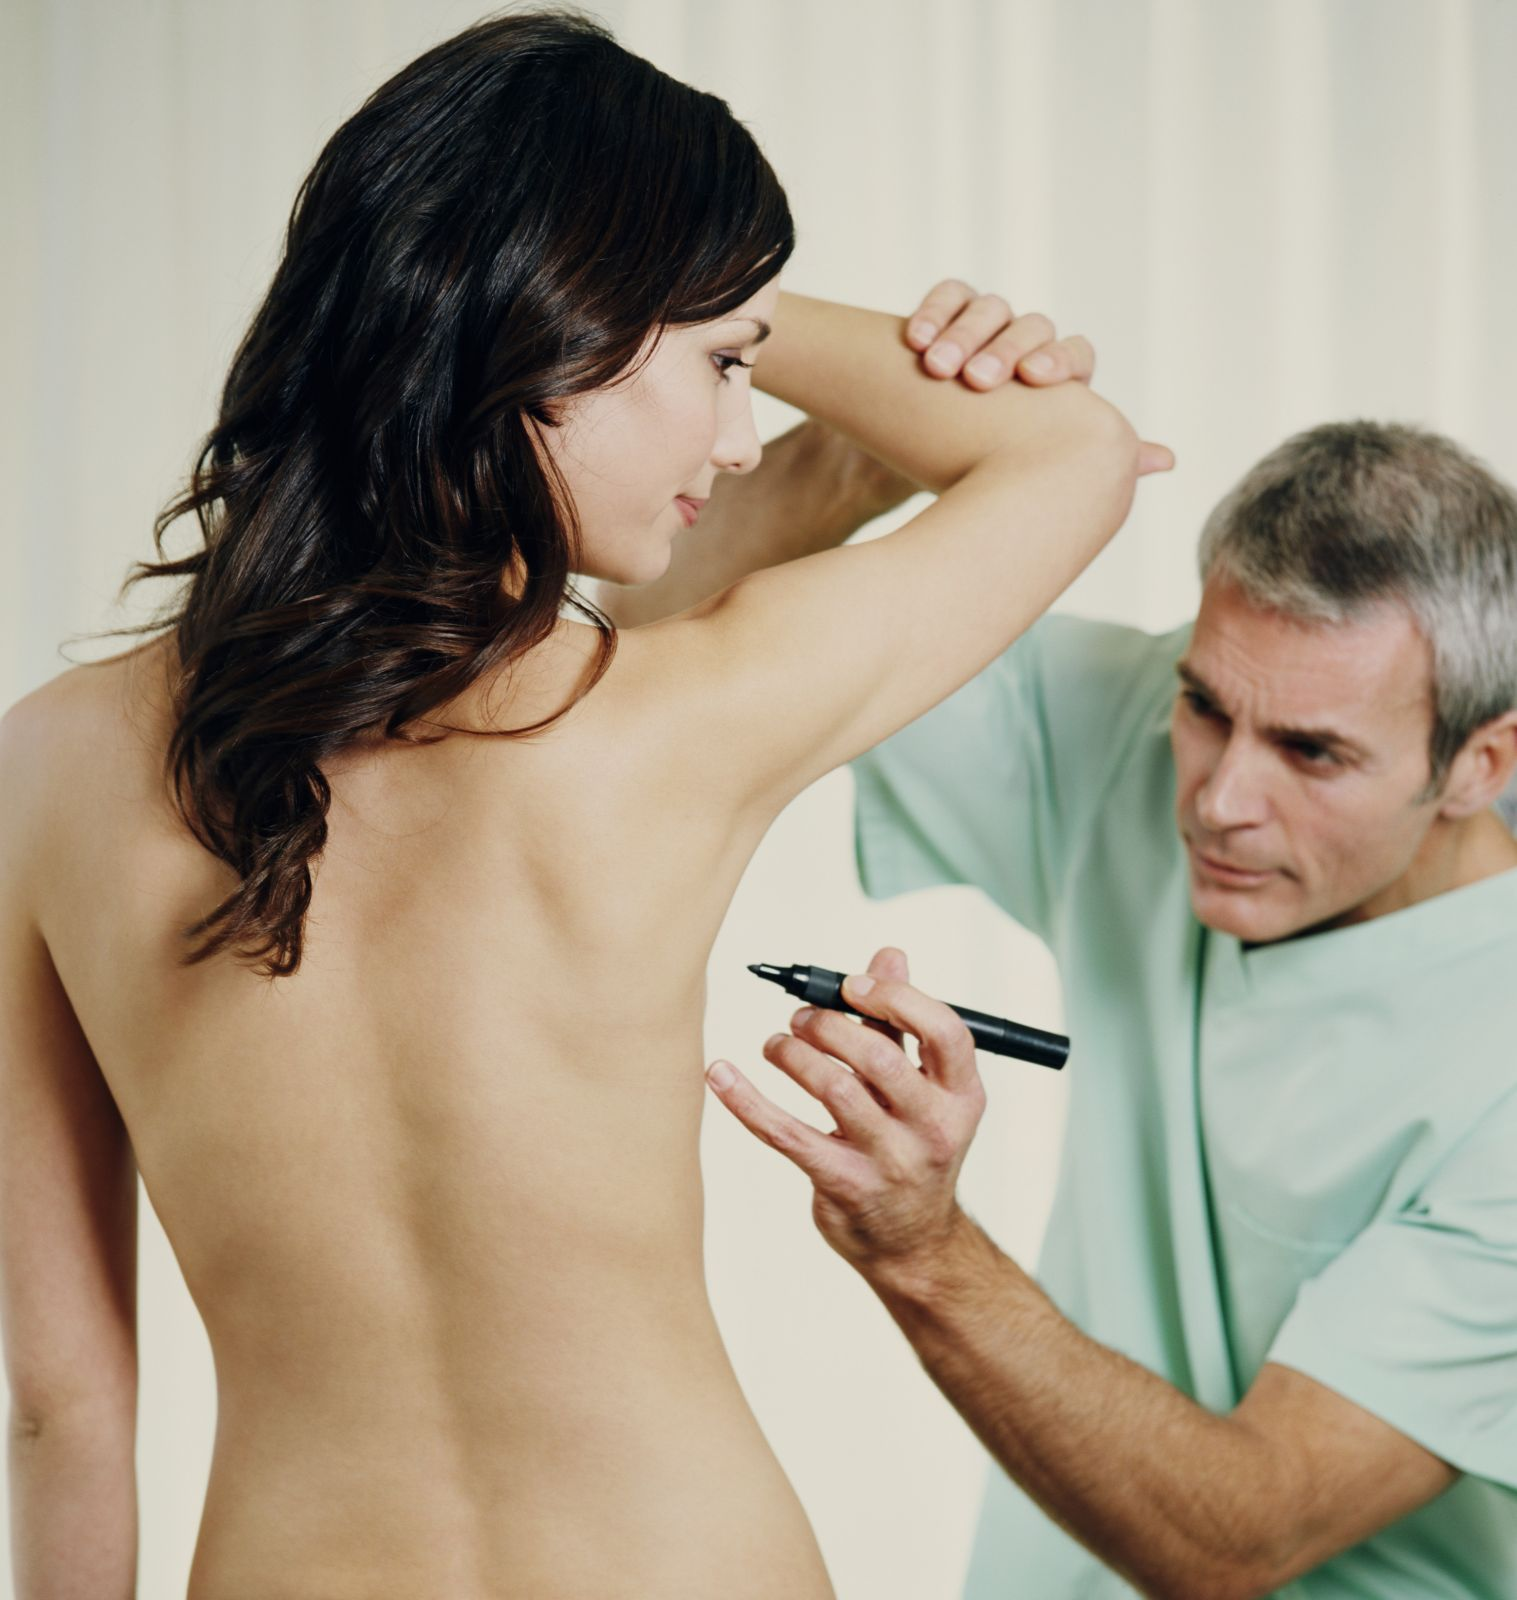 Myth: Breast implants can raise your cancer risk.